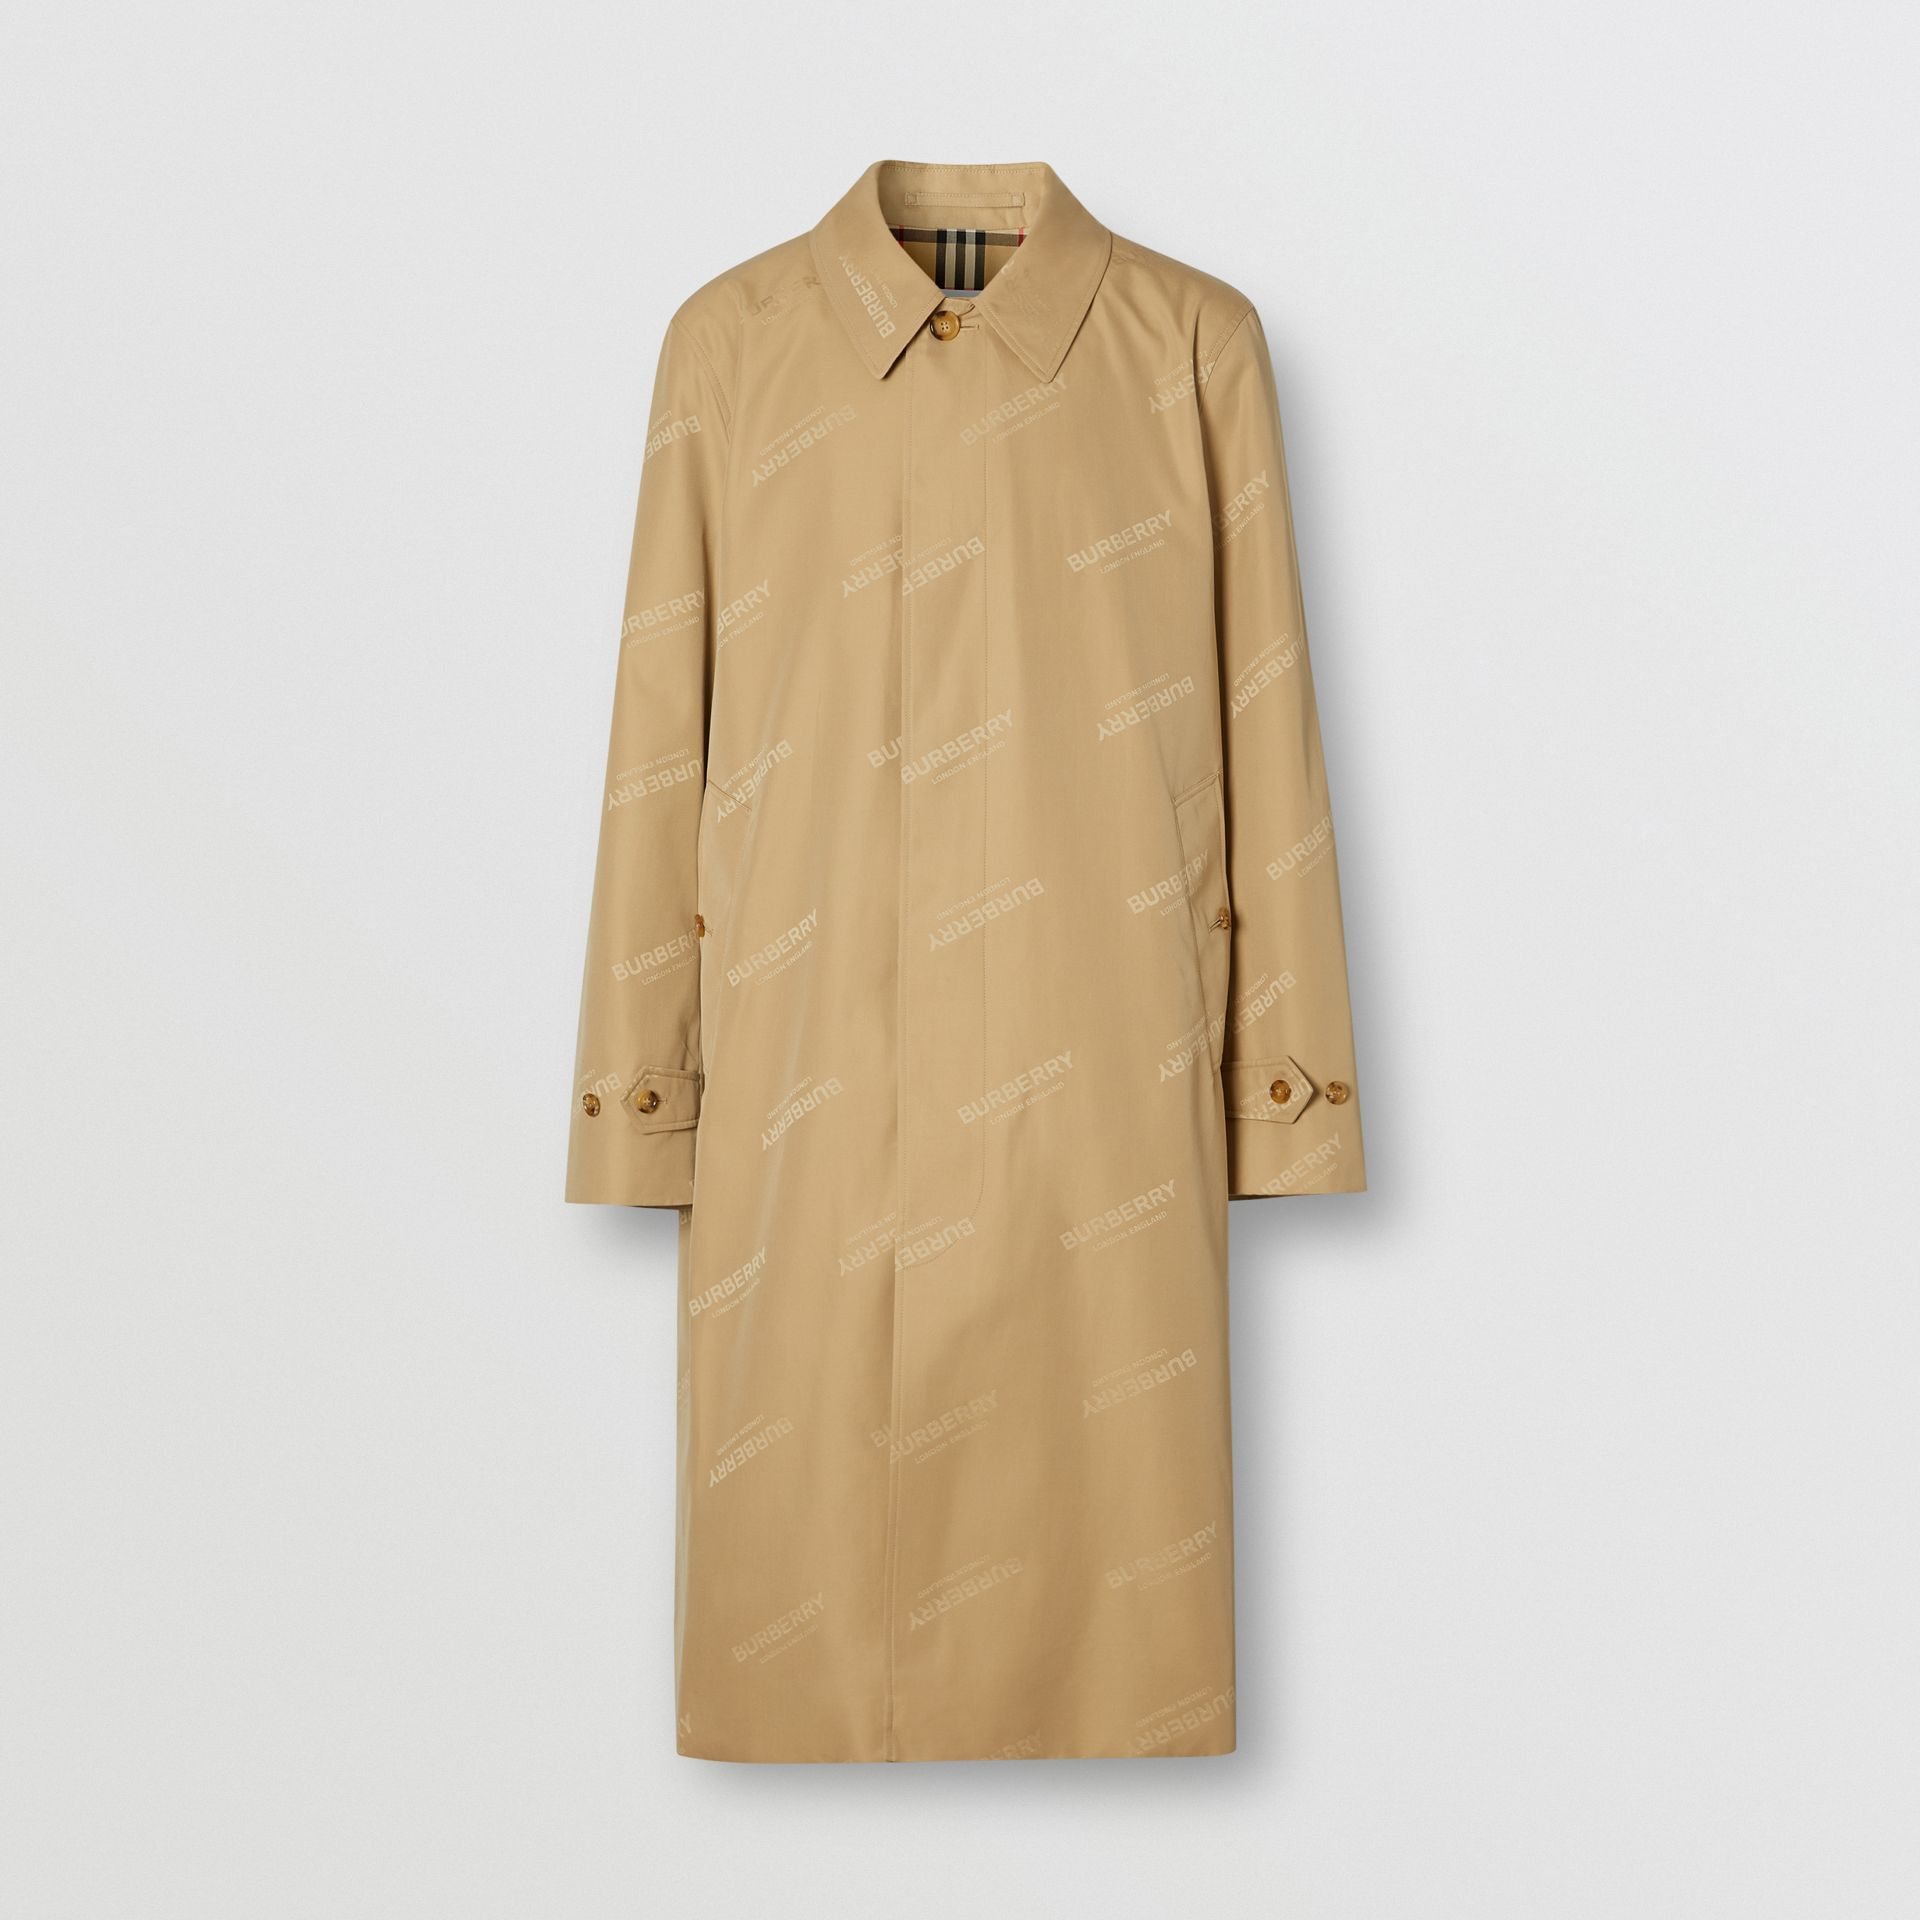 Logo Jacquard Cotton Twill Car Coat in Soft Fawn - Men | Burberry - gallery image 3